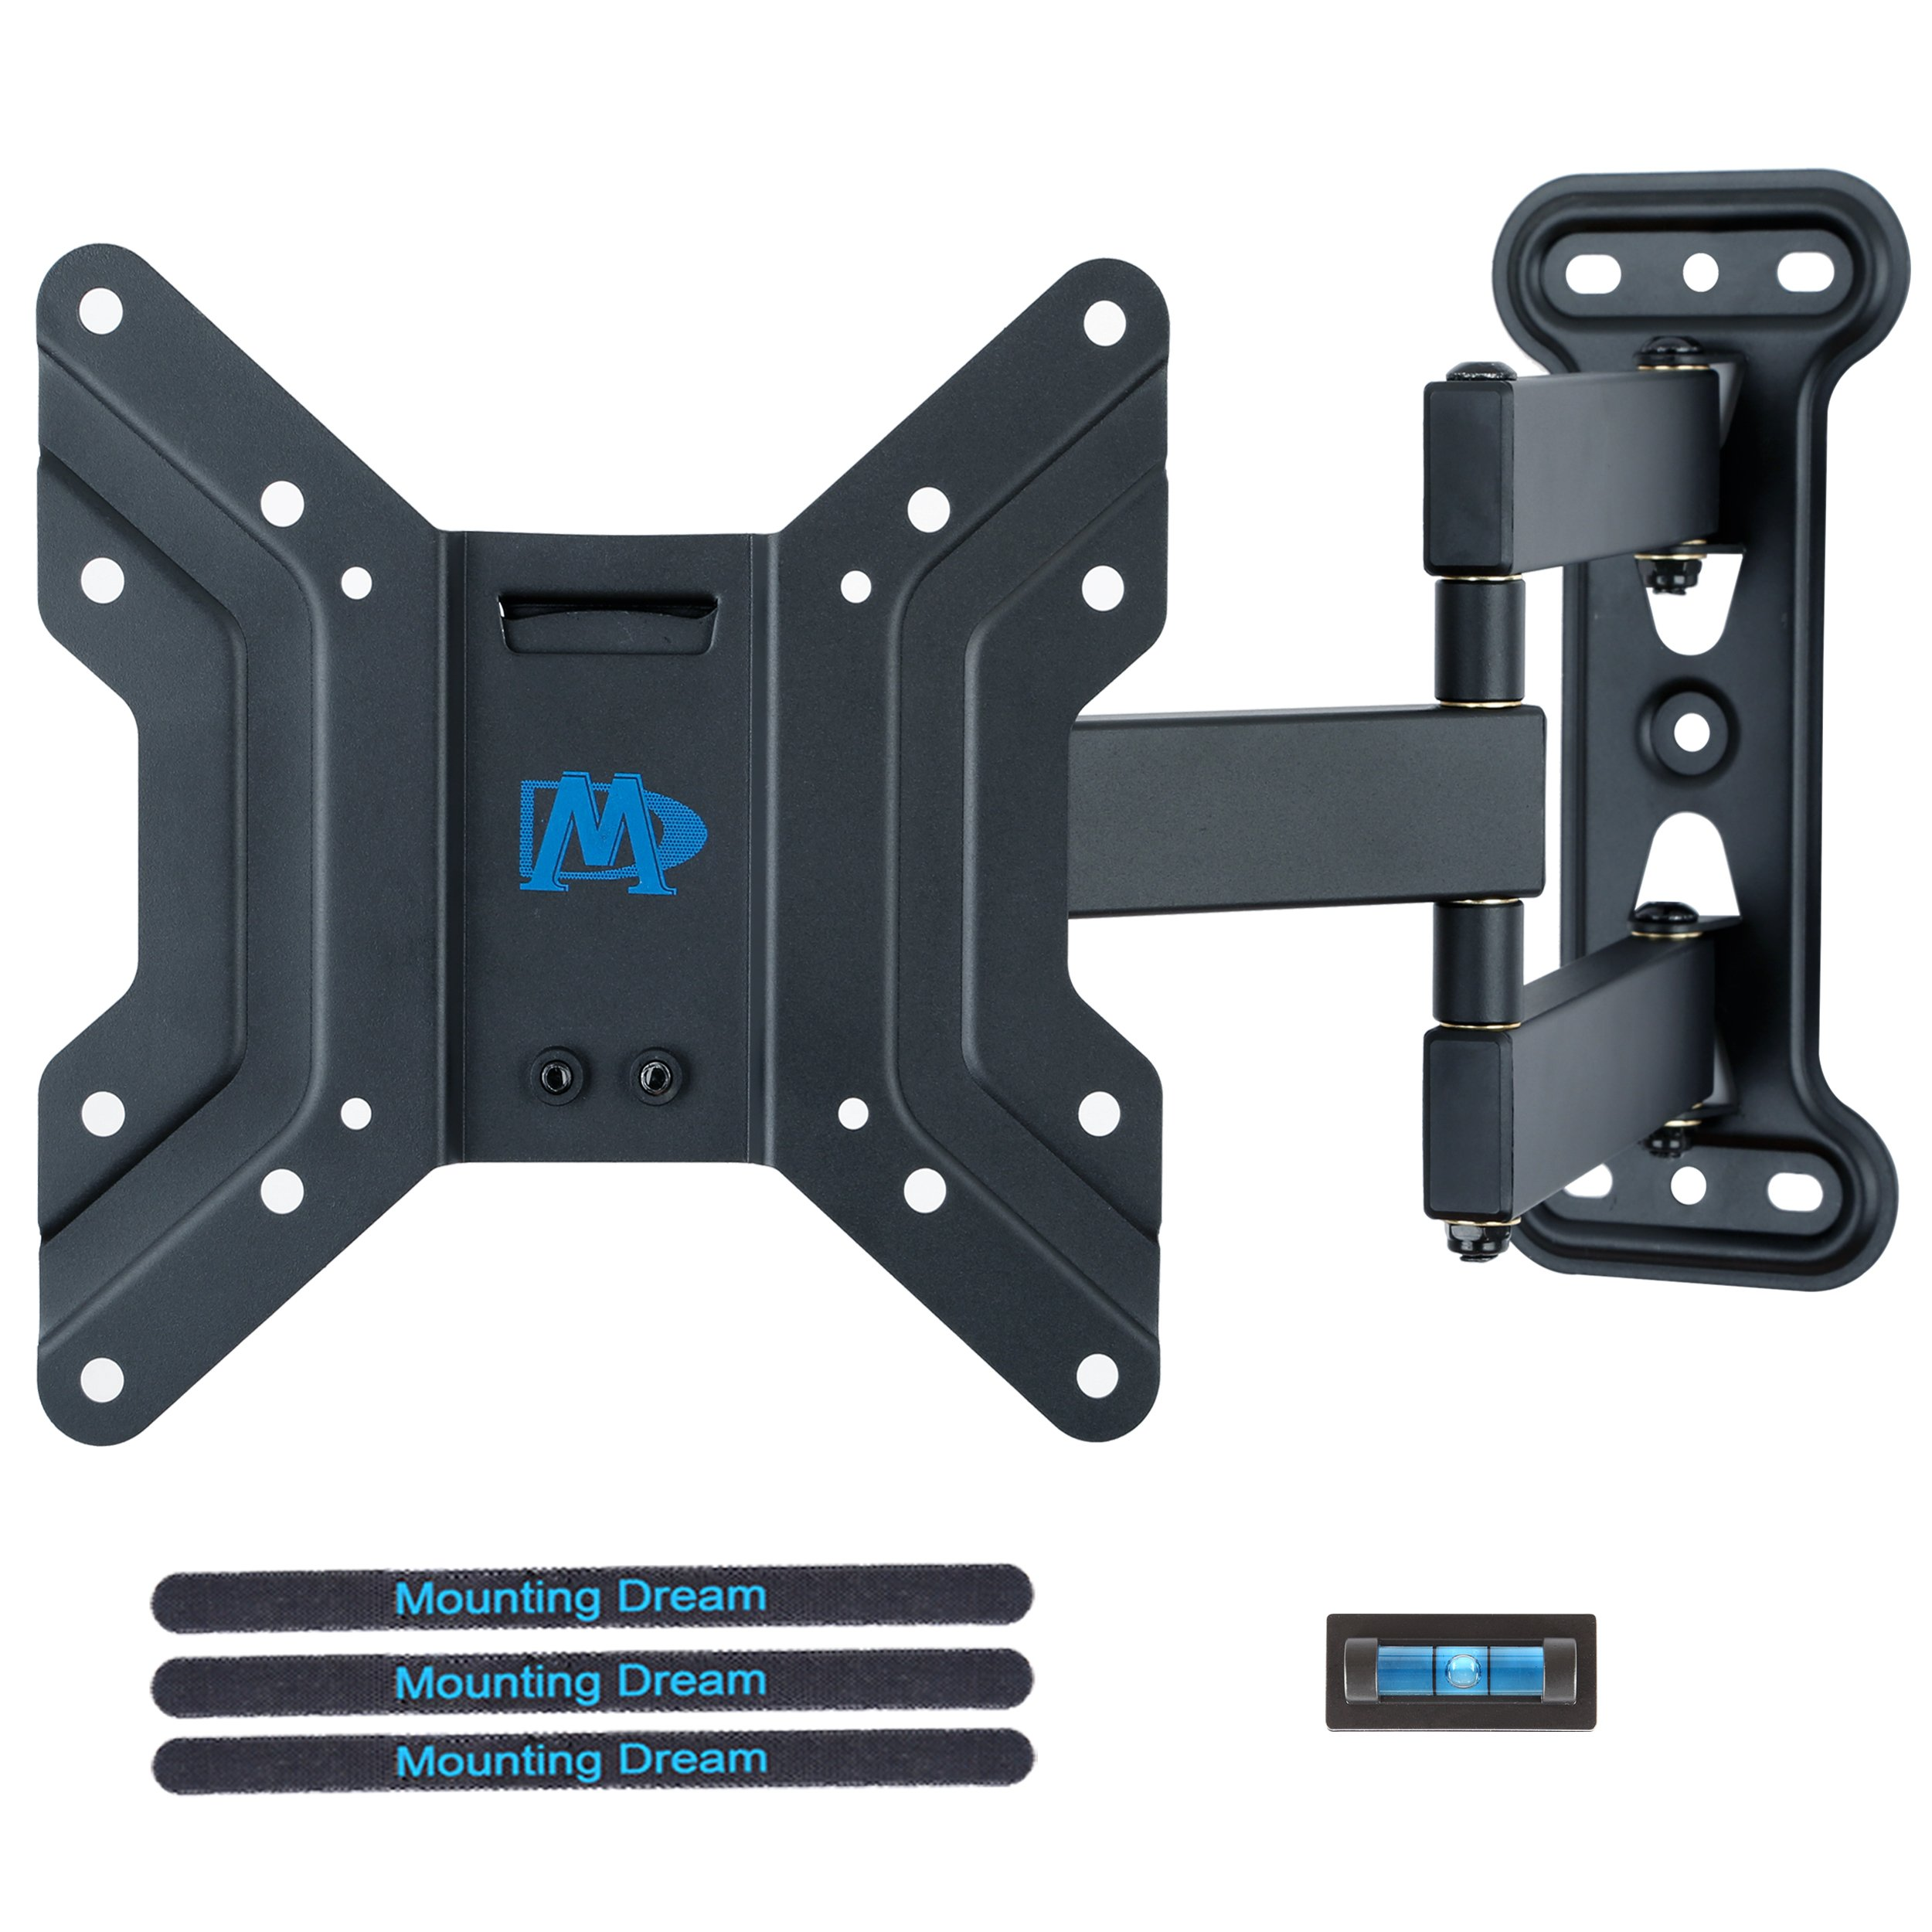 """Mounting Dream MD2413-S Full Motion TV Wall Mount Bracket with Articulating Arms, 60 Lbs Loading Capacity, Fits Most of 17-39 Inches LED, LCD TV with Max VESA 200 x 200mm, 18.8"""" Extension"""